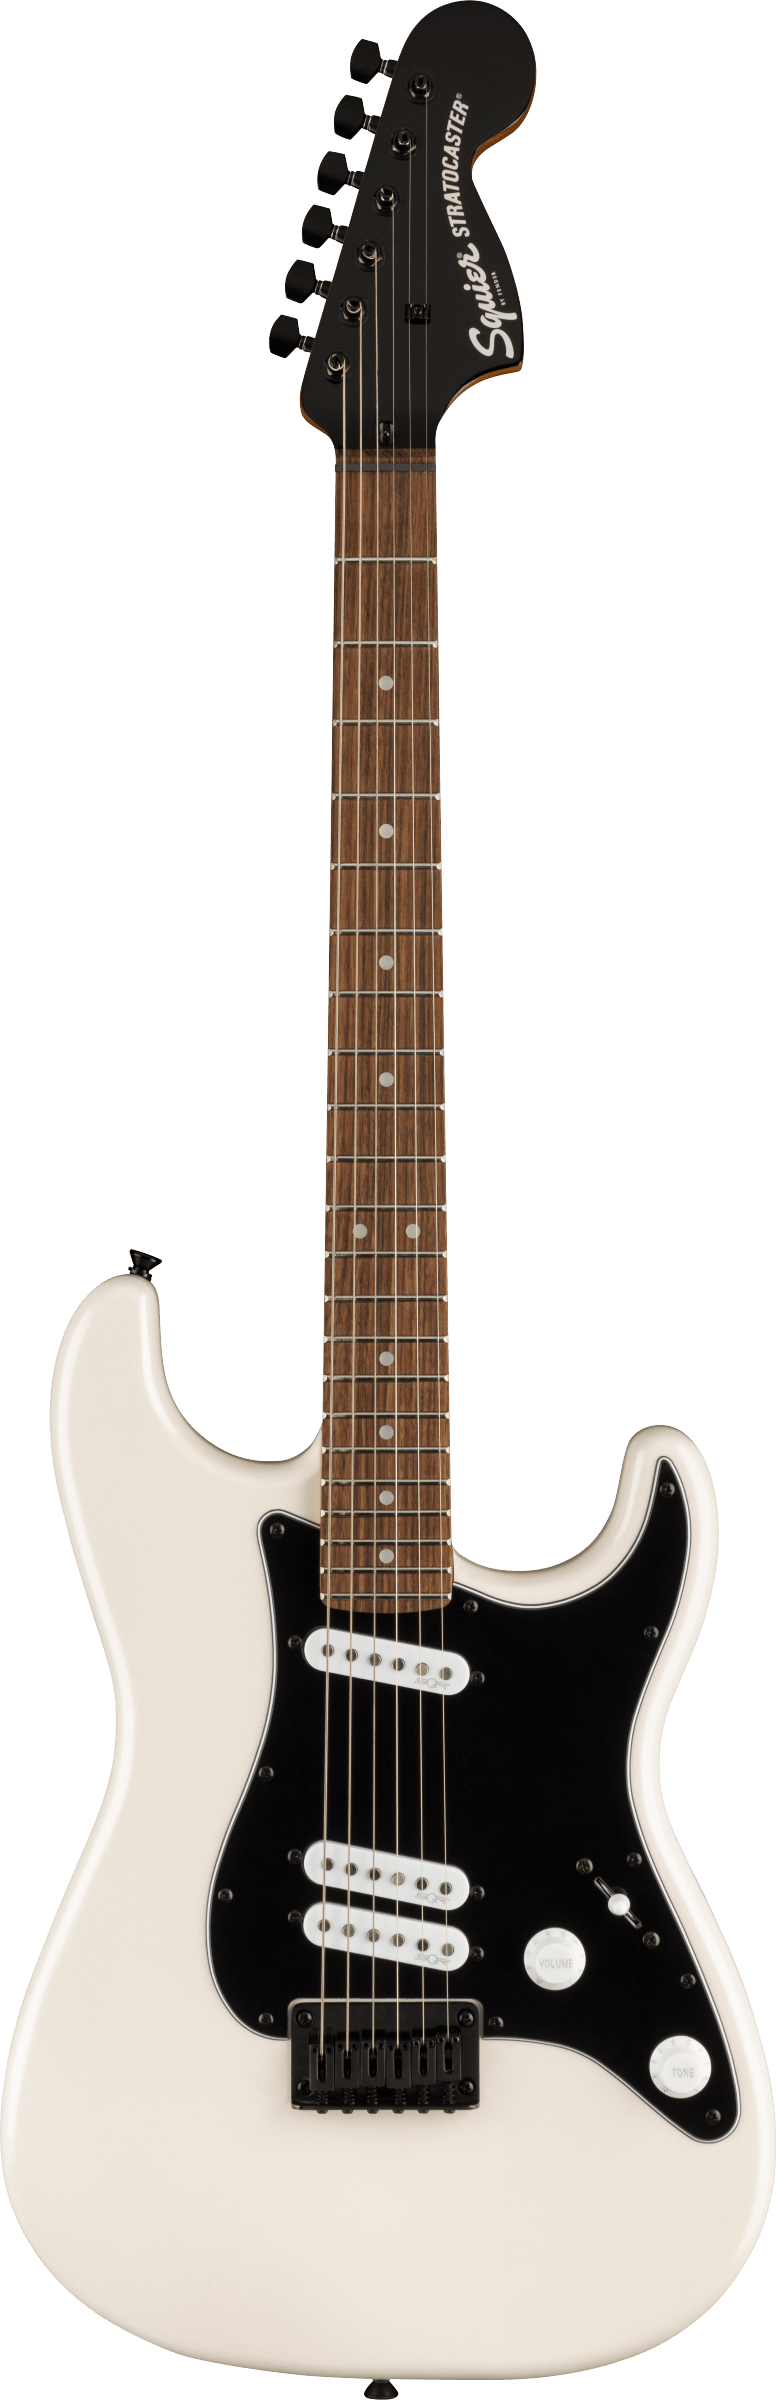 Squier Contemporary Series Stratocaster HT Special Pearl White - Regent Sounds